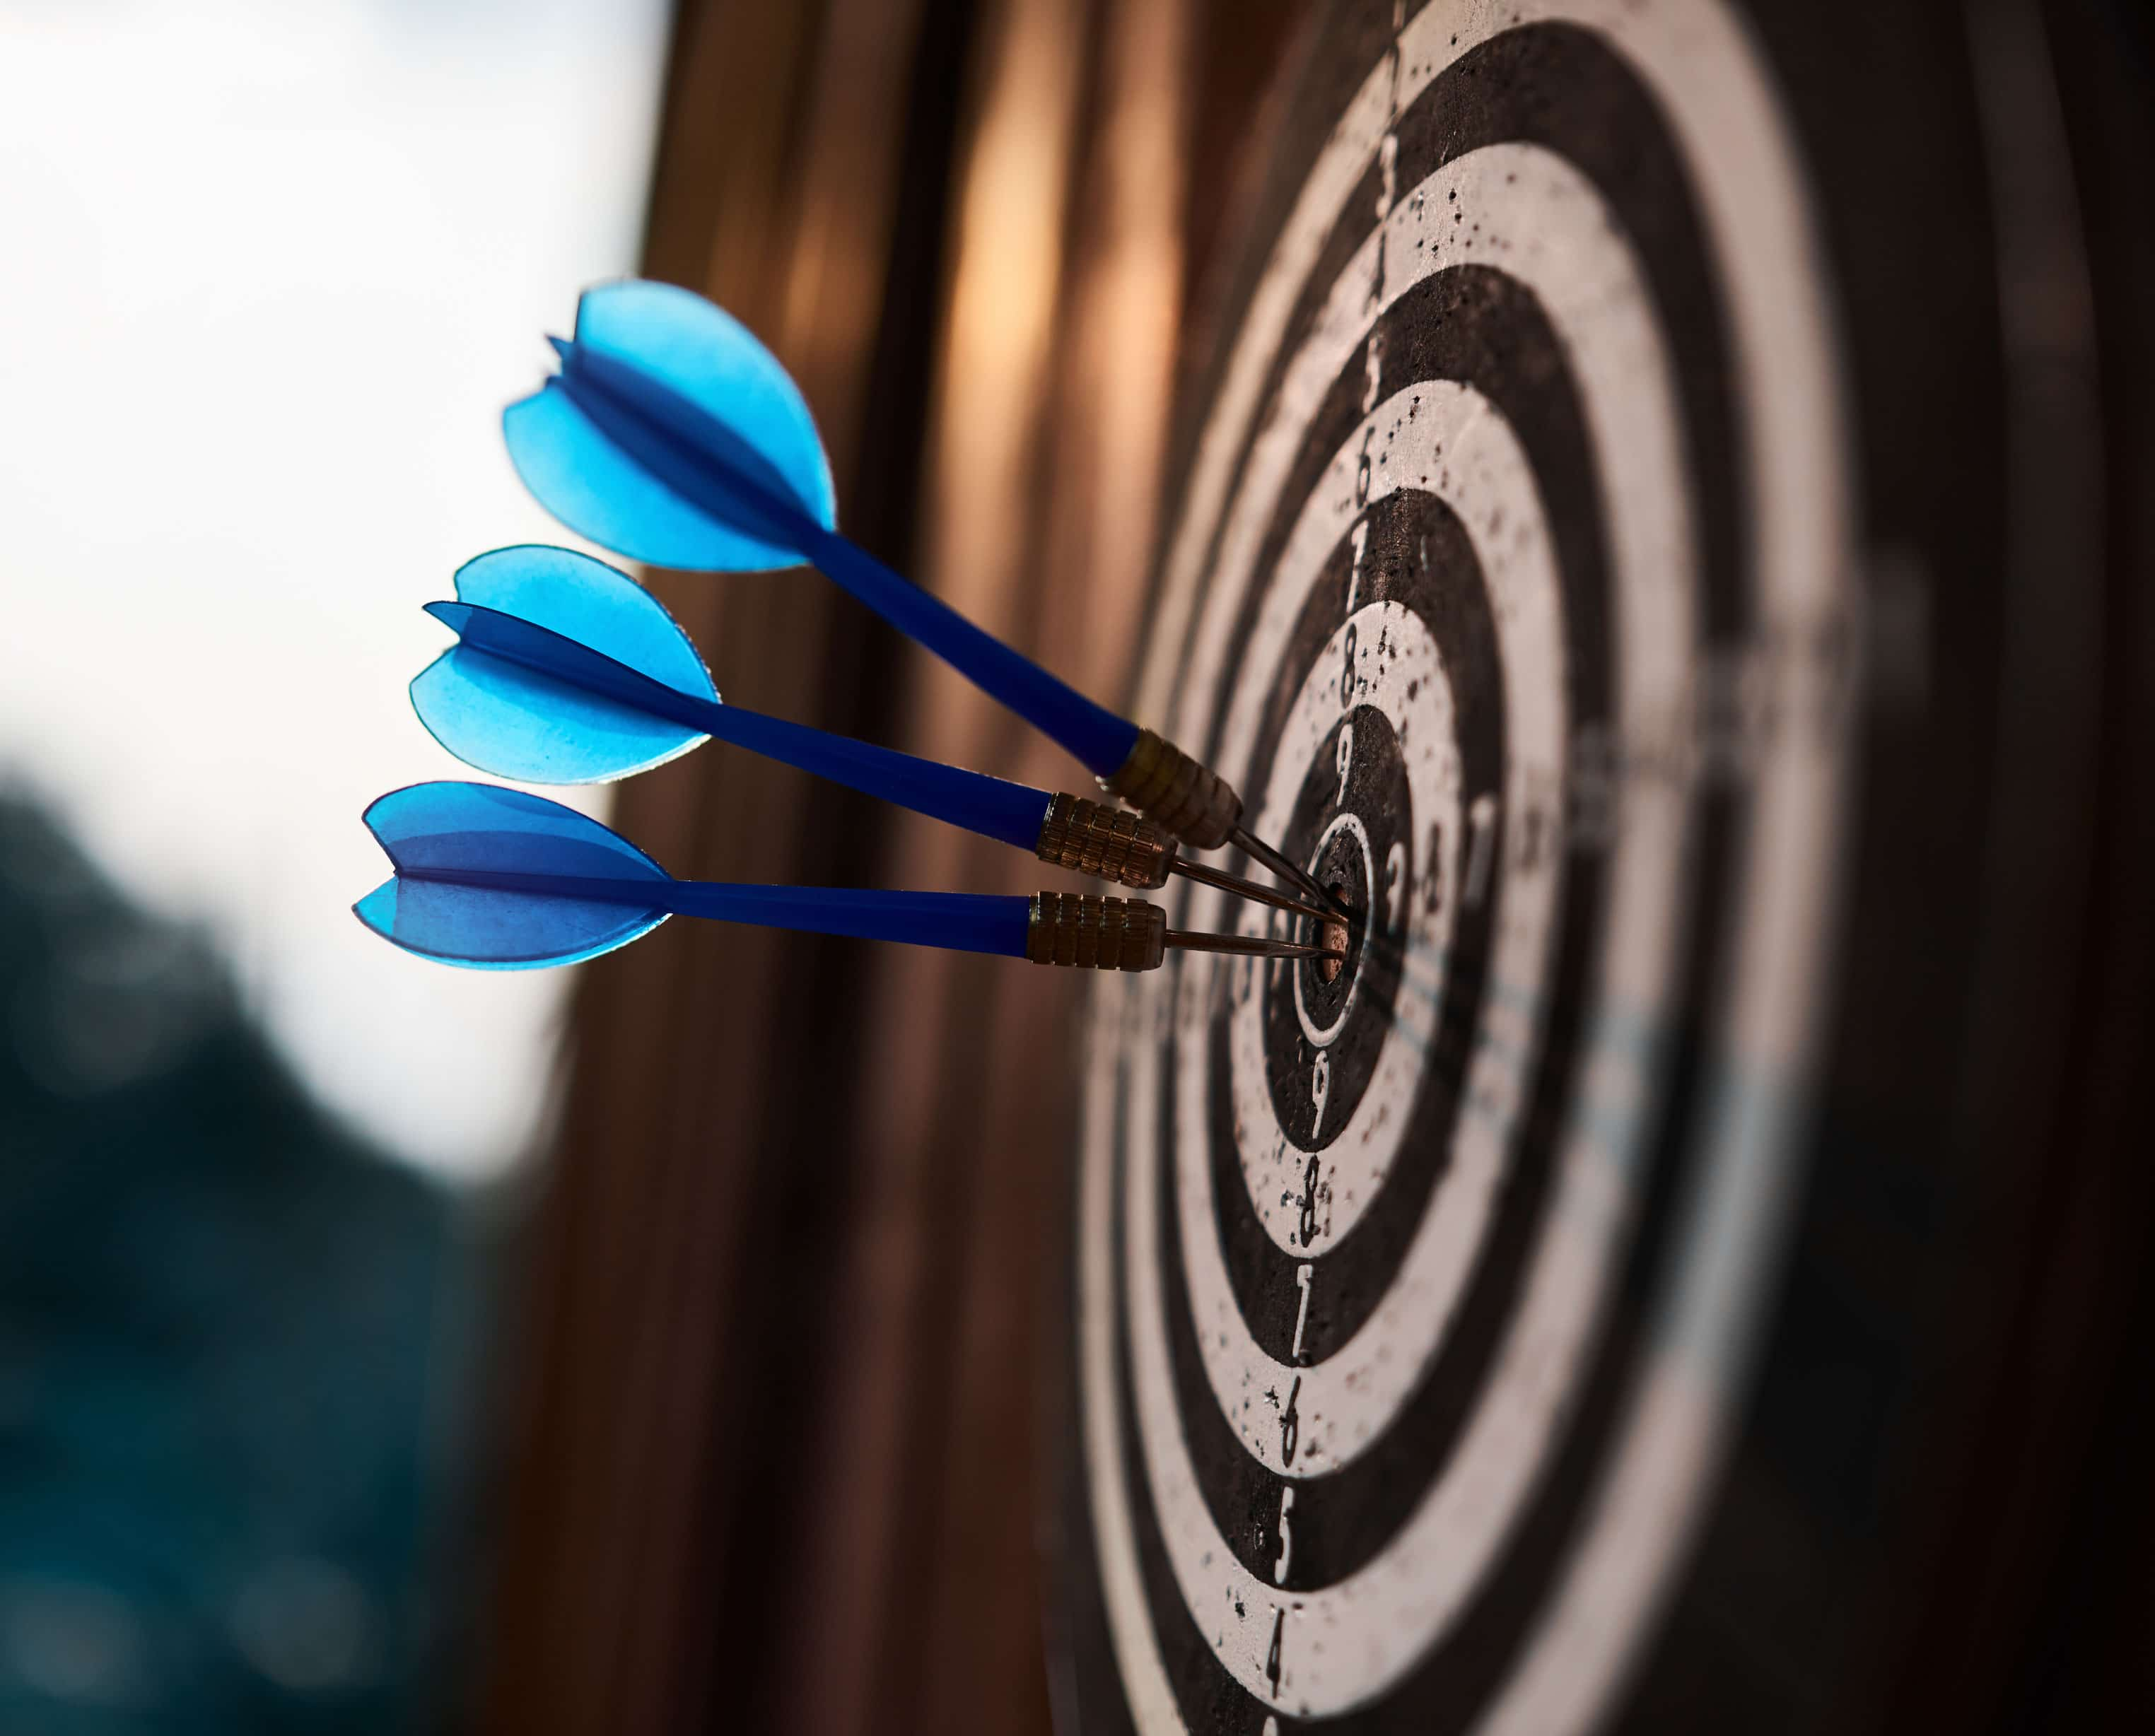 Engage your acquisition targets - Exit Advisory Group